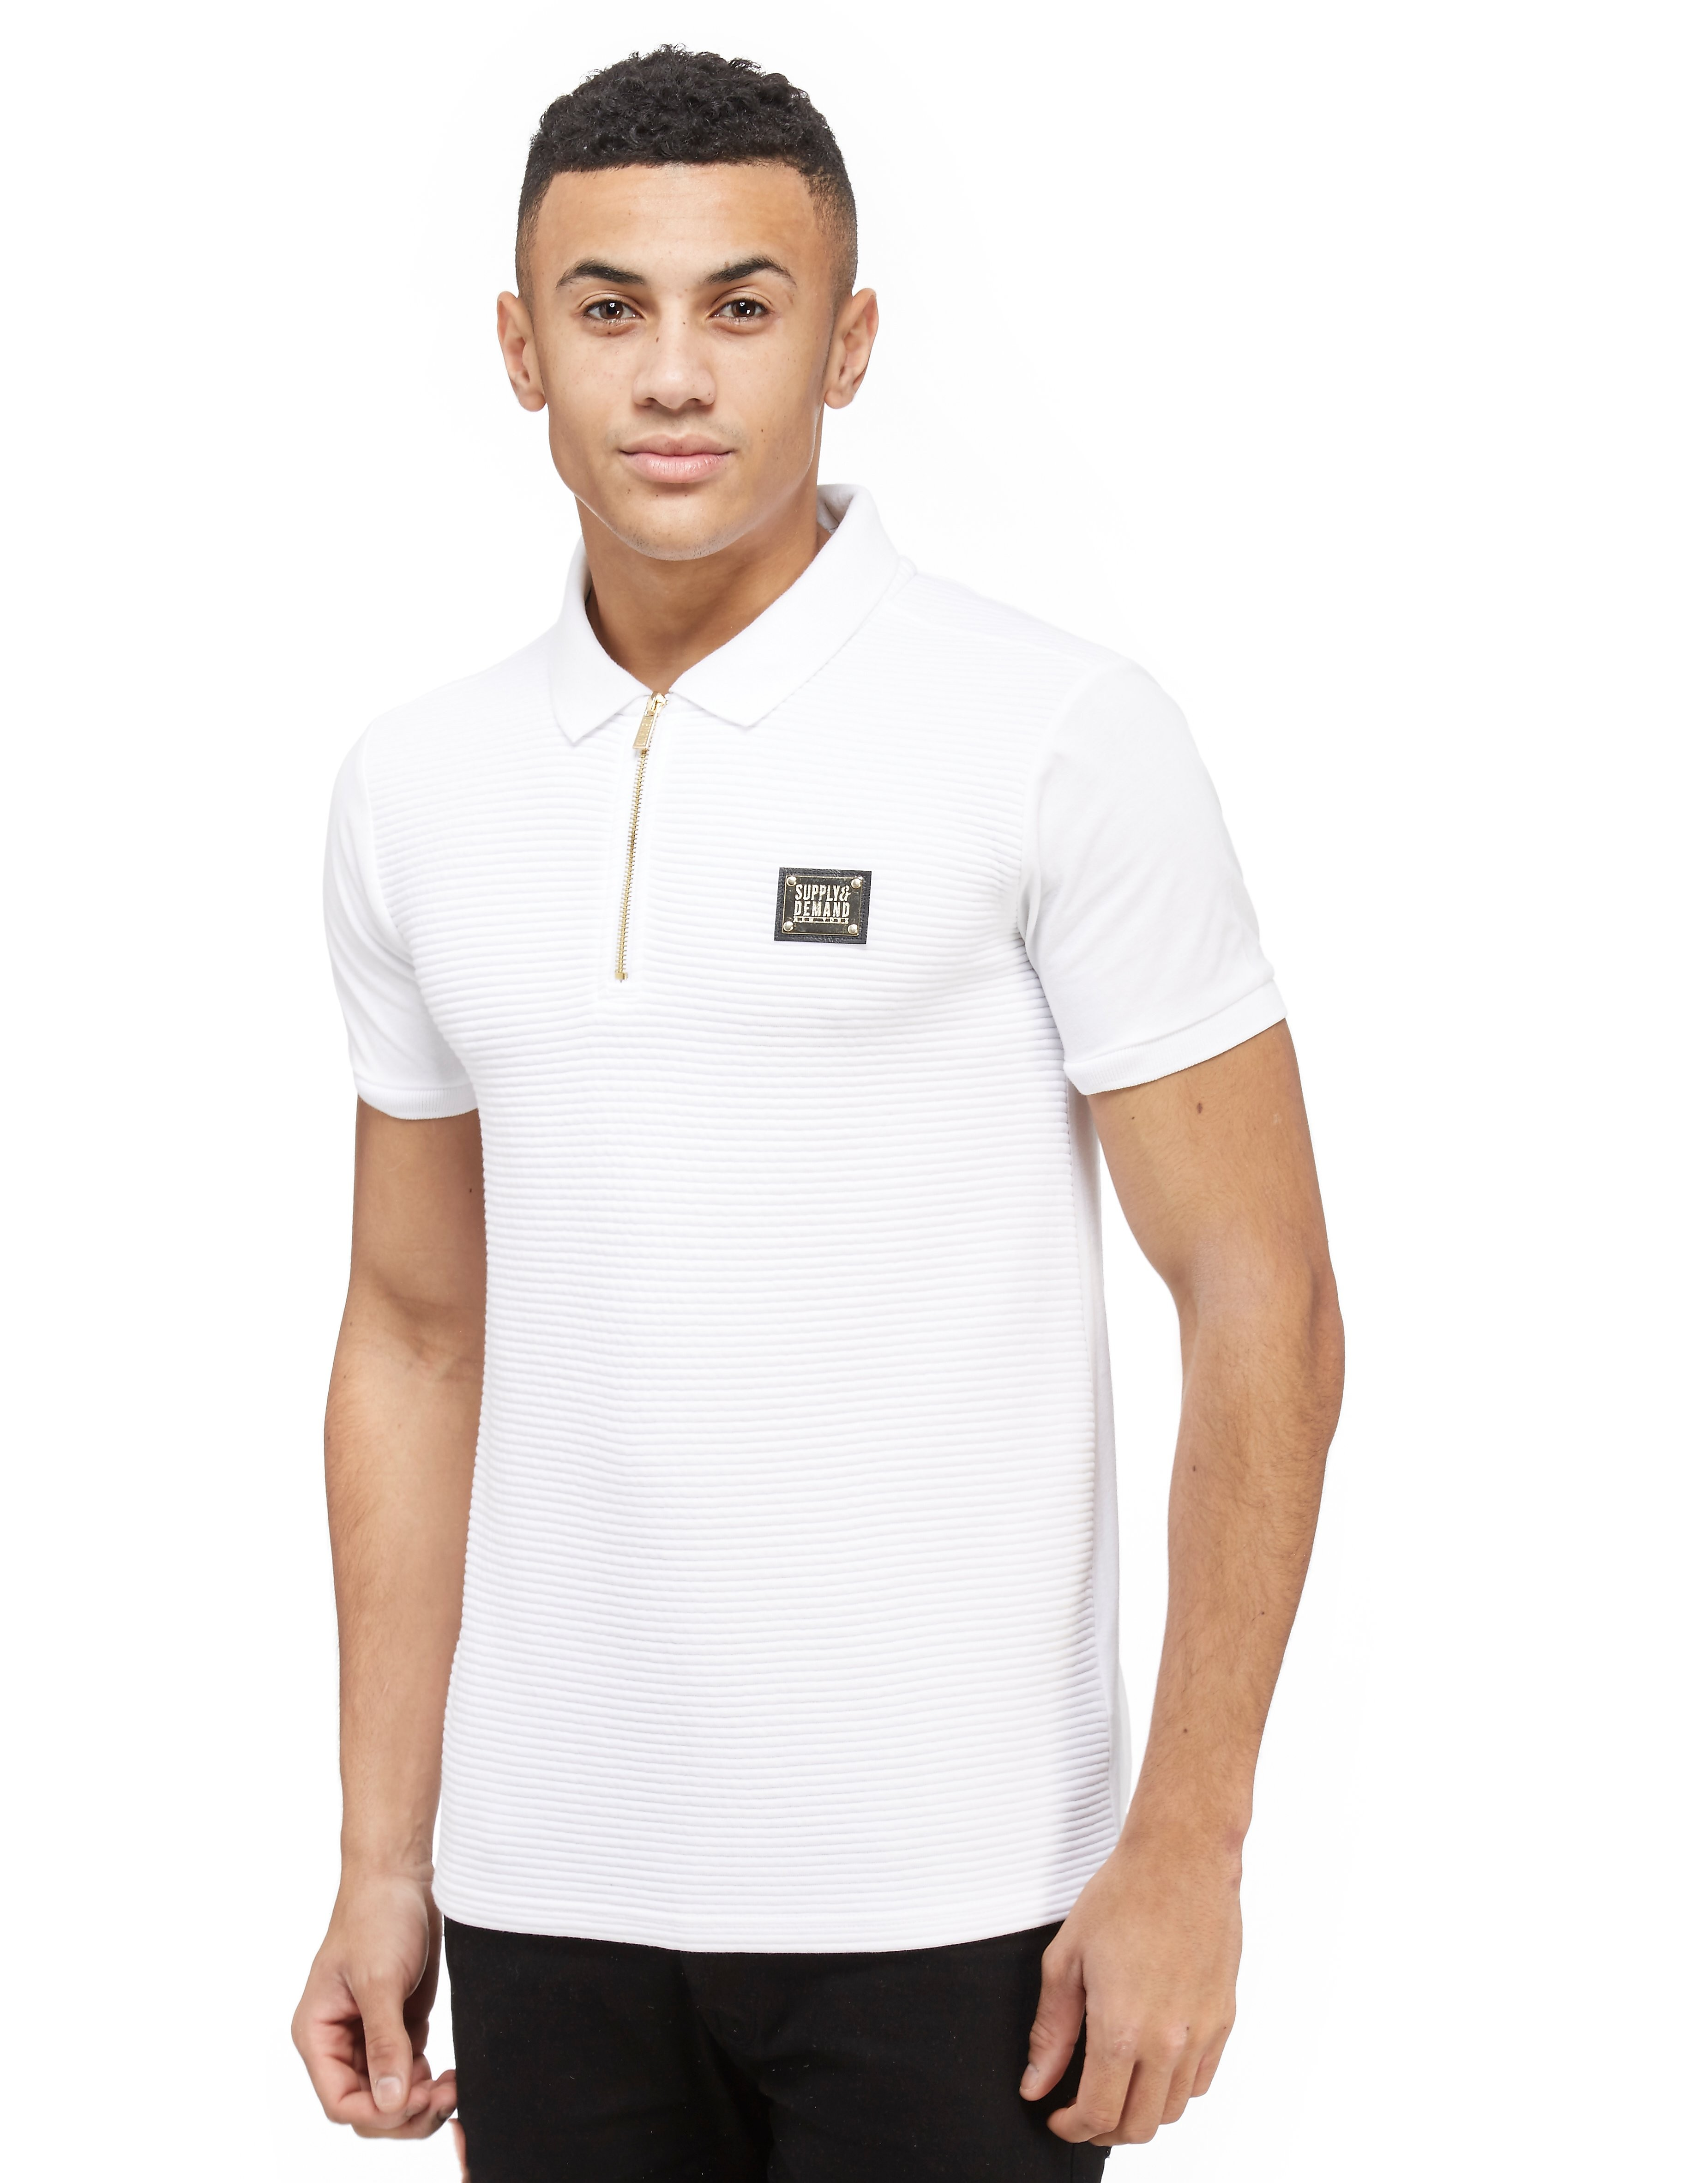 Supply & Demand Tester Polo Shirt